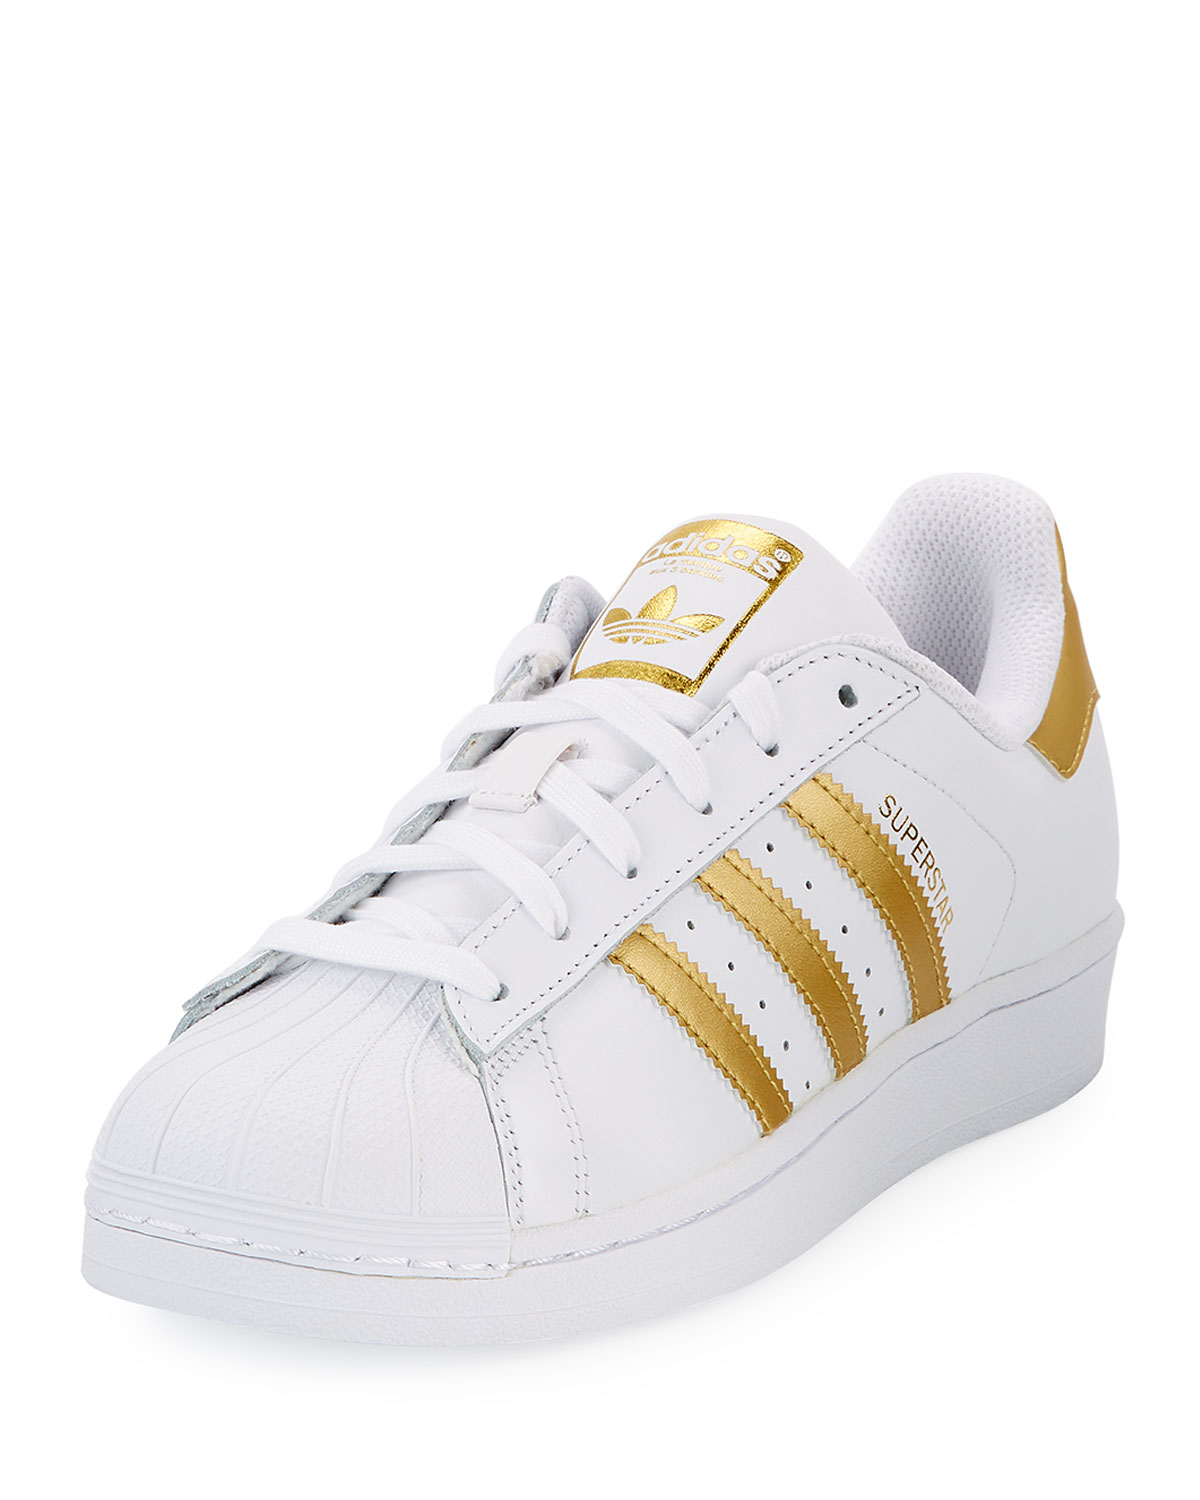 28dd69c4495 Adidas Superstar Original Fashion Sneaker